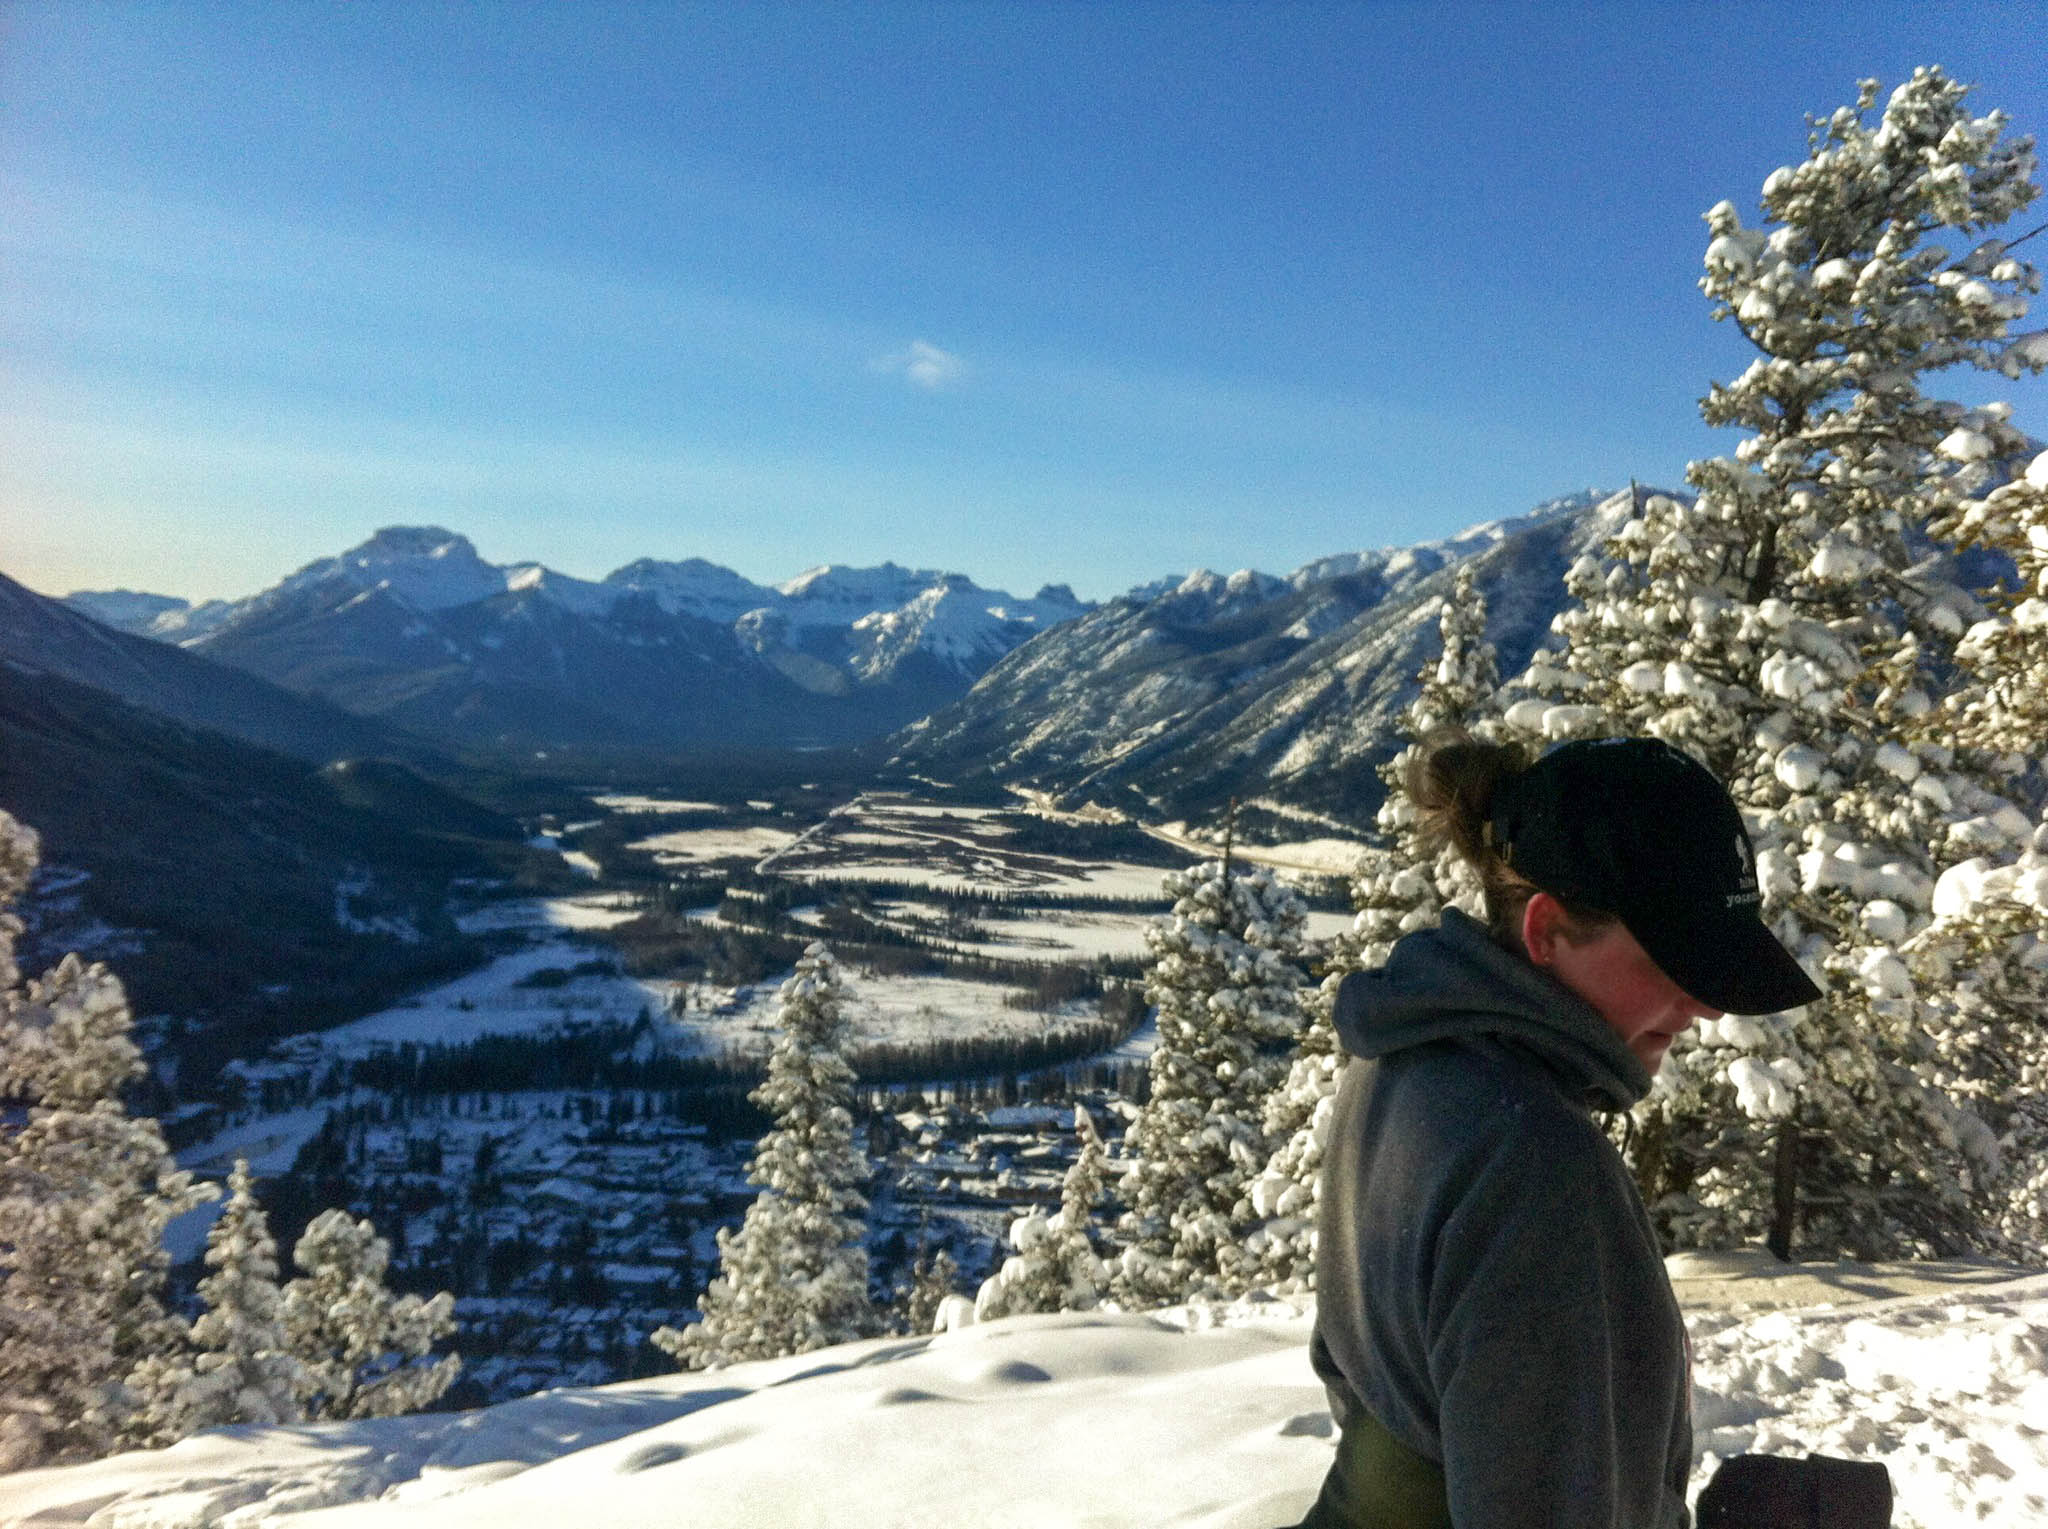 The view of Banff from the top of Tunnel Mountain.